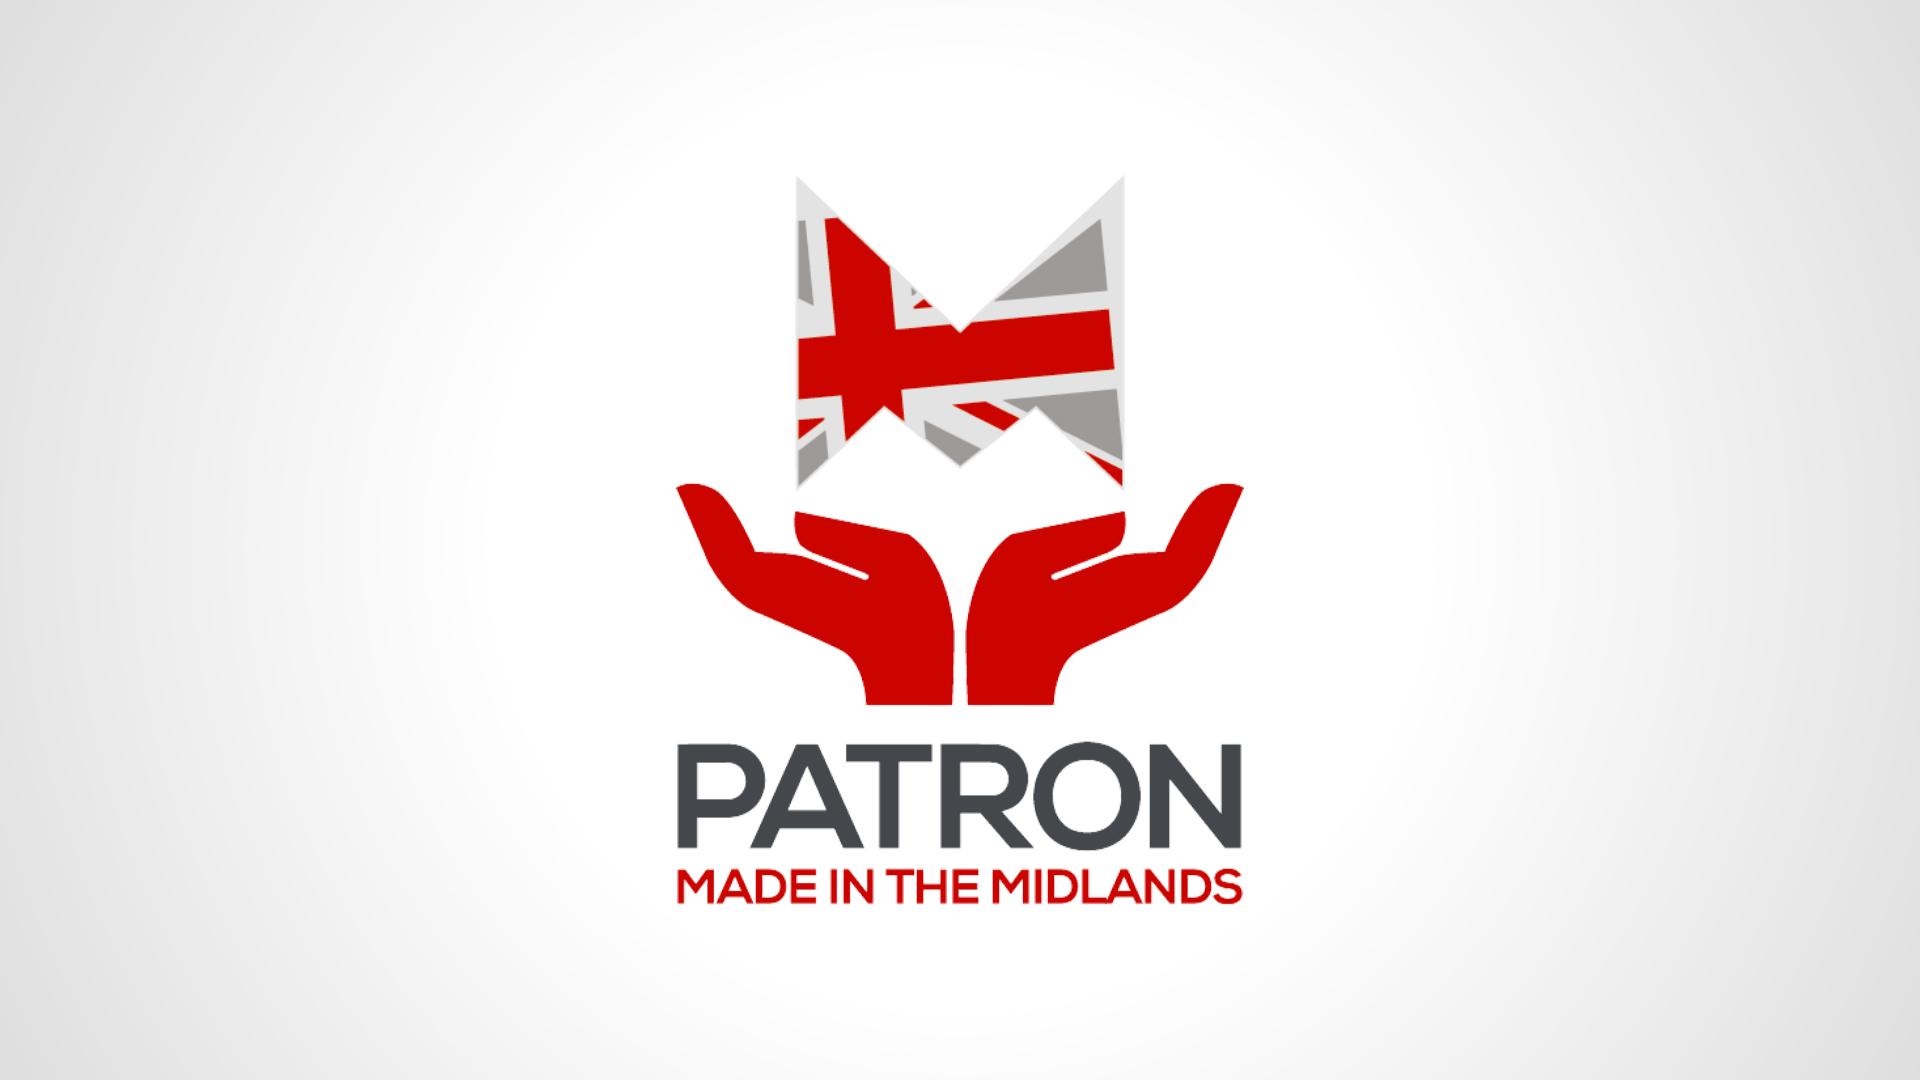 Made in the Midlands Partnership